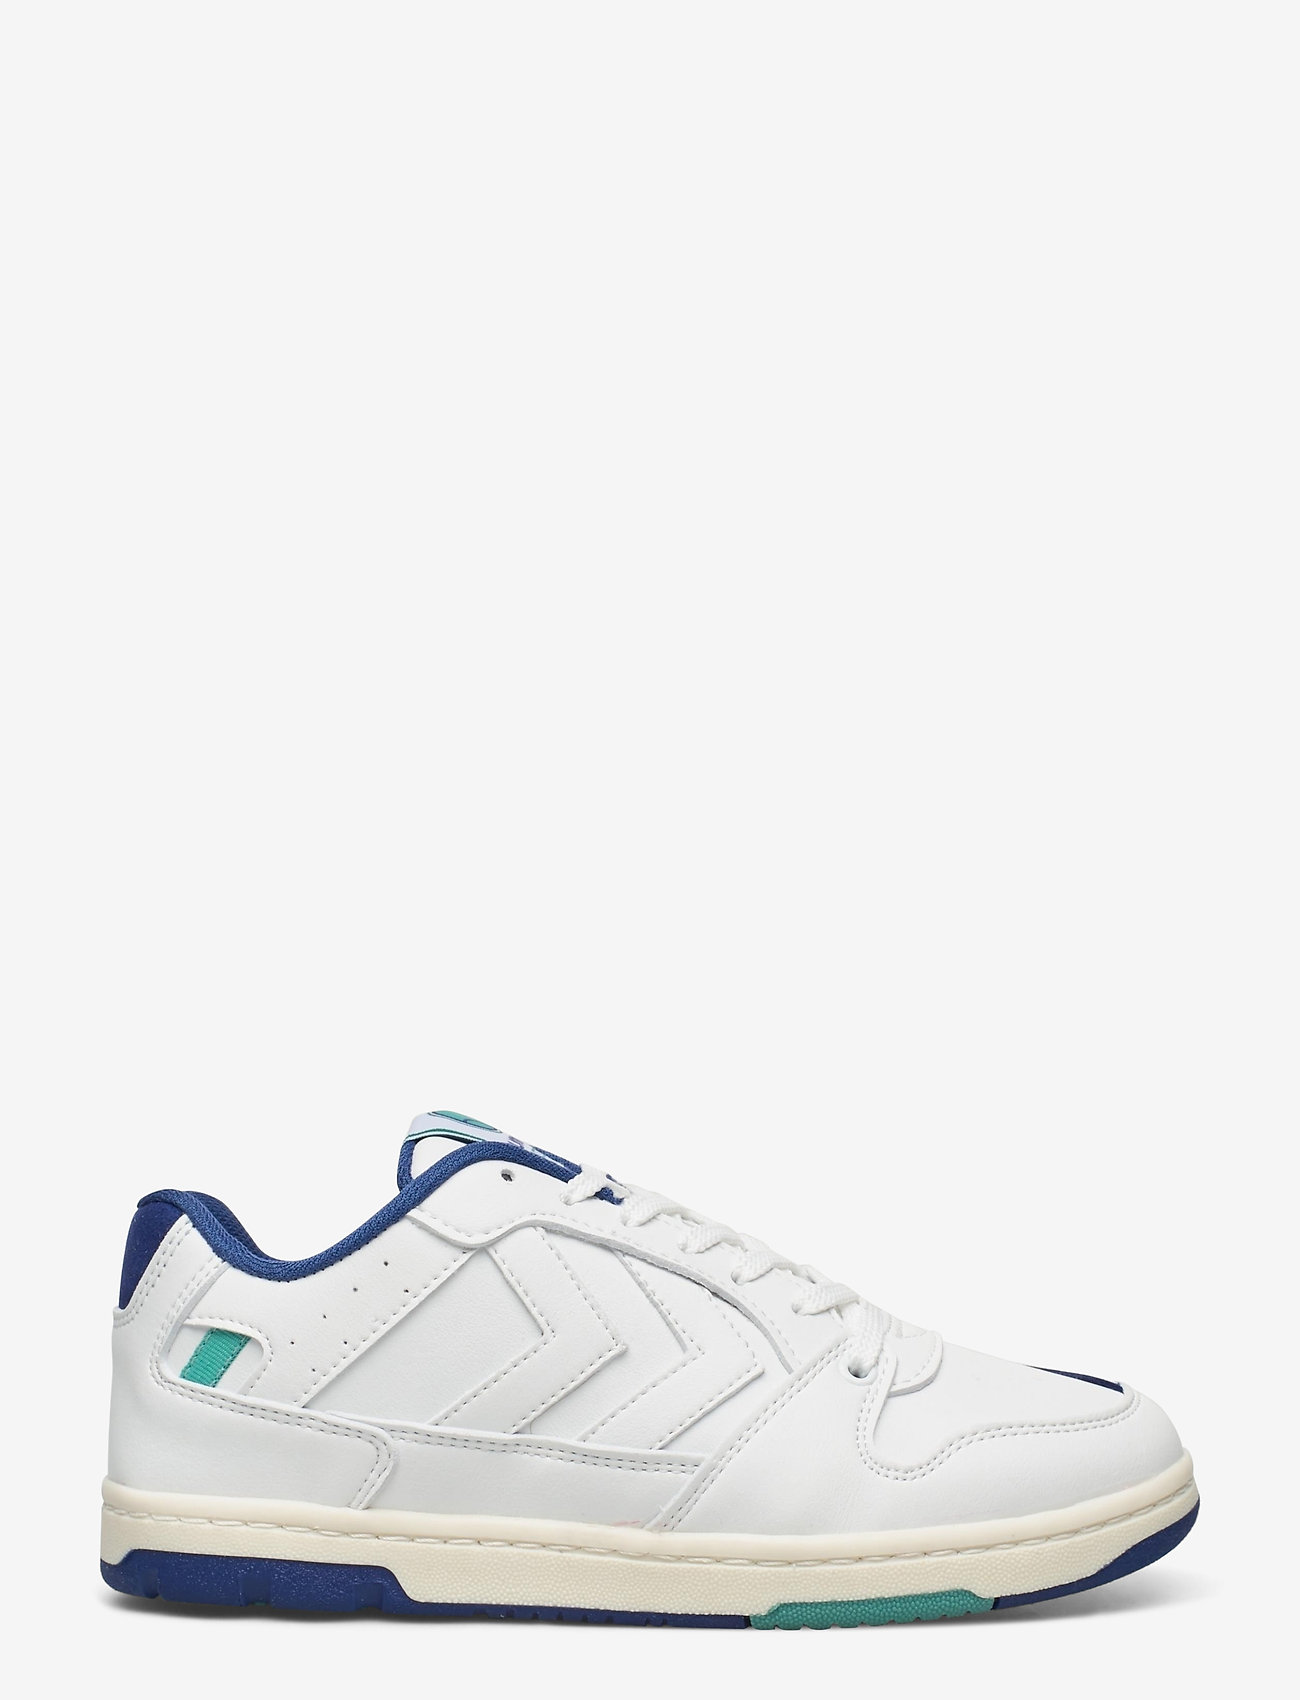 Hummel - POWER PLAY VEGAN ARCHIVE - laag sneakers - white/blue/green - 0